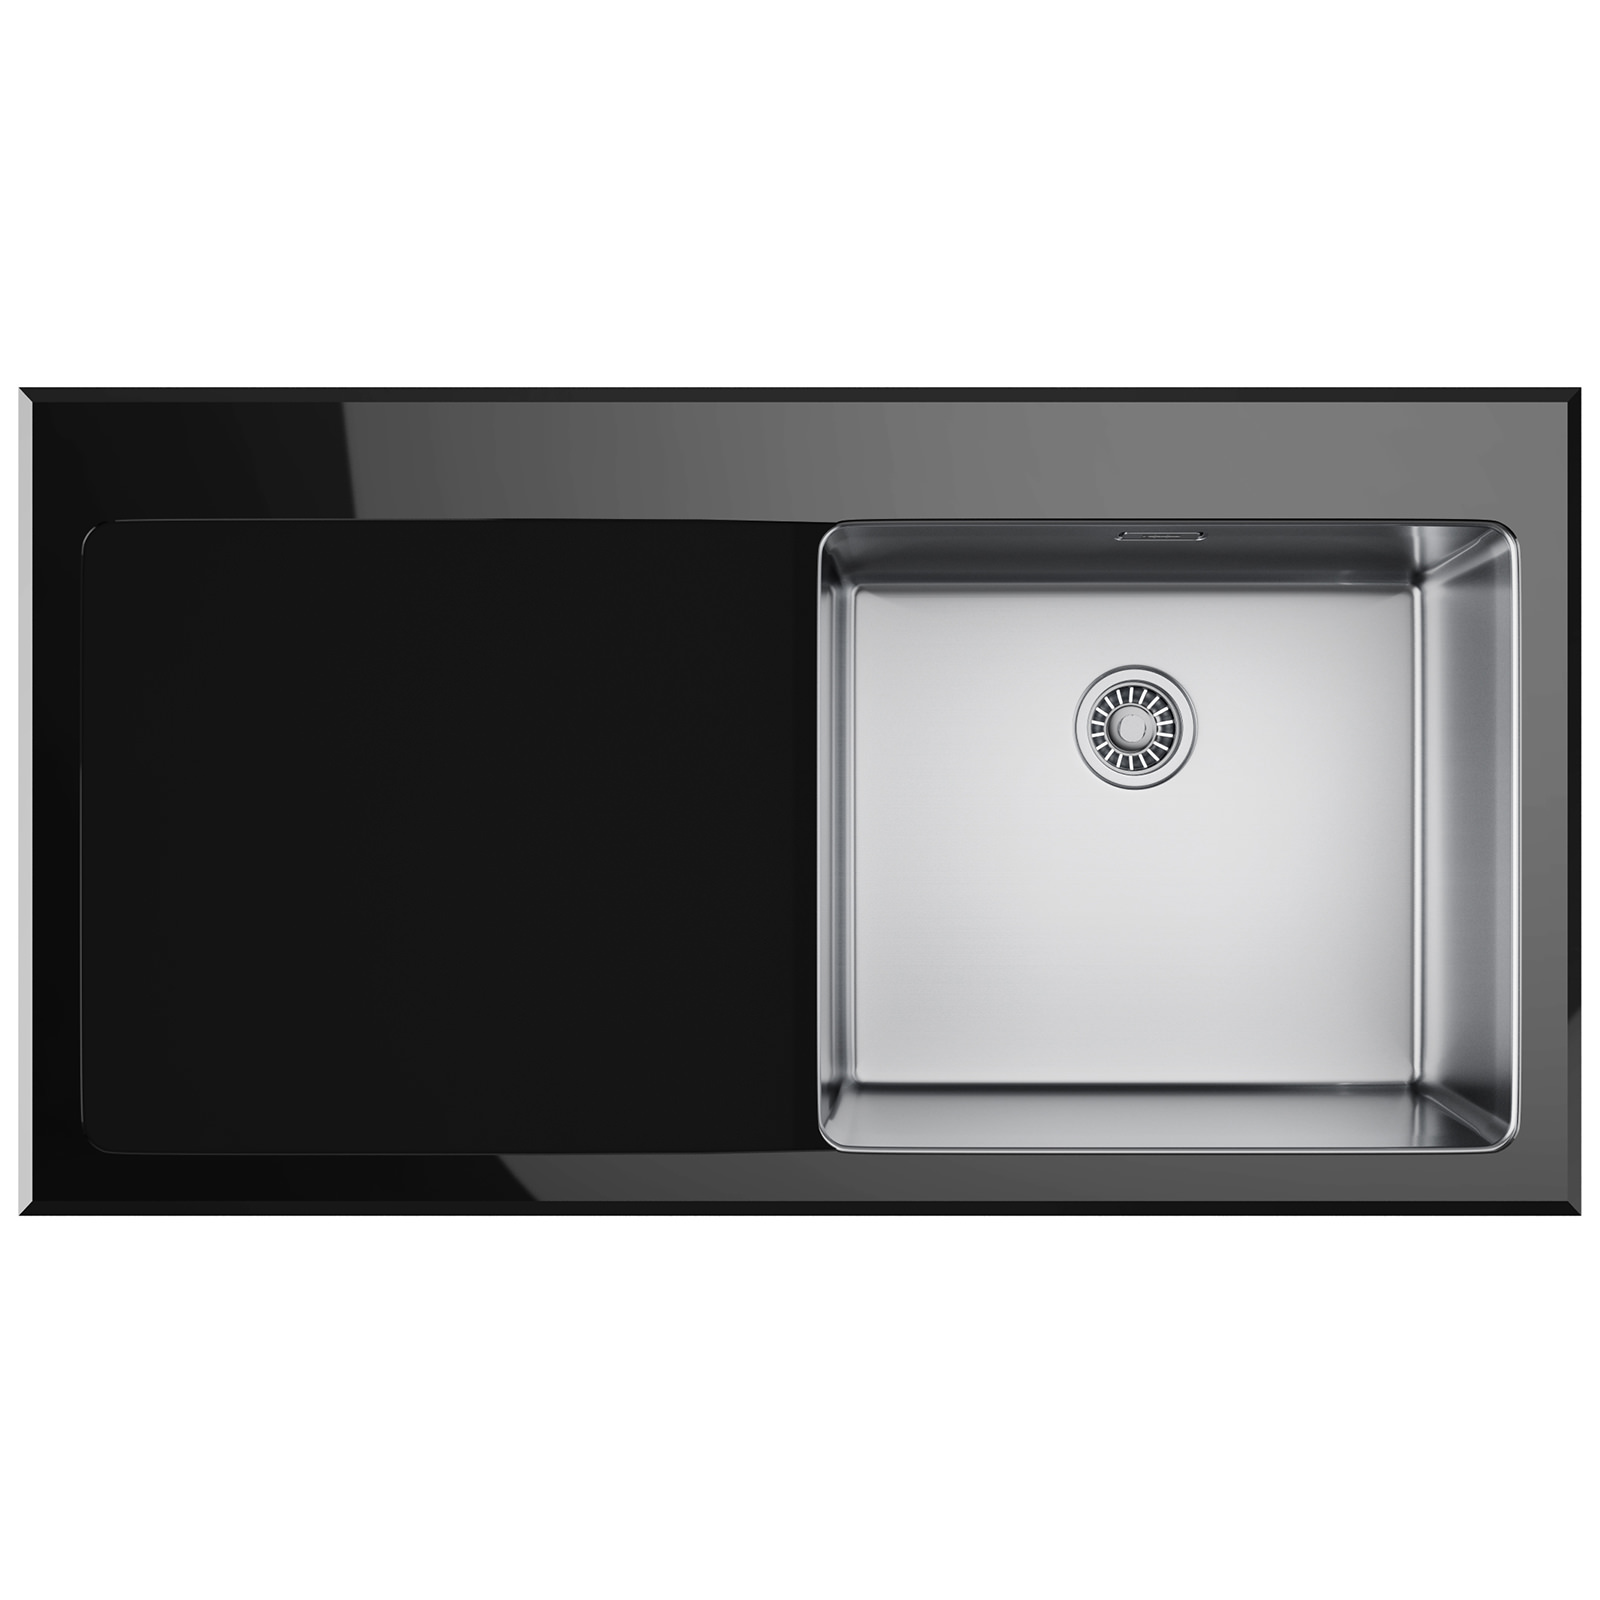 Franke Black Kitchen Sink: Franke Kubus KBV 611 Black Glass 1.0 Bowl Inset Kitchen